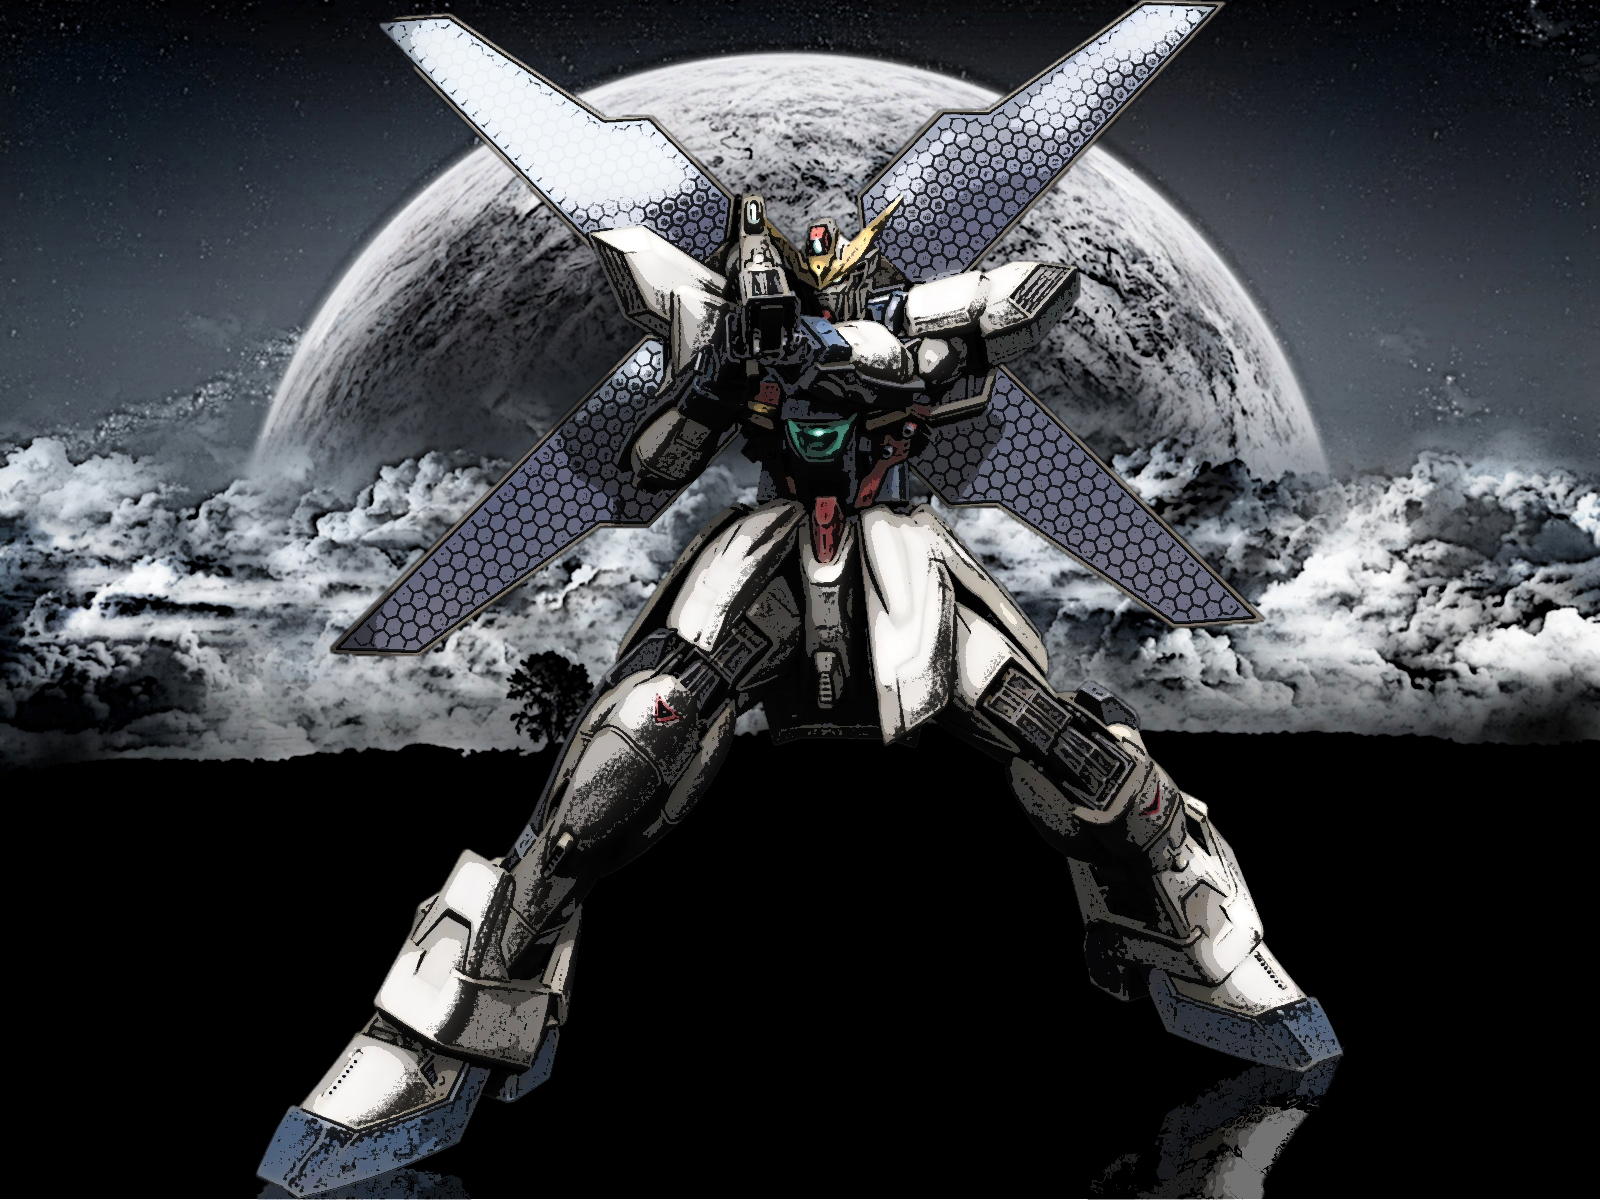 Gundam Poster Anime Wallpaper HD 981 3908 Wallpaper High Resolution 1600x1200